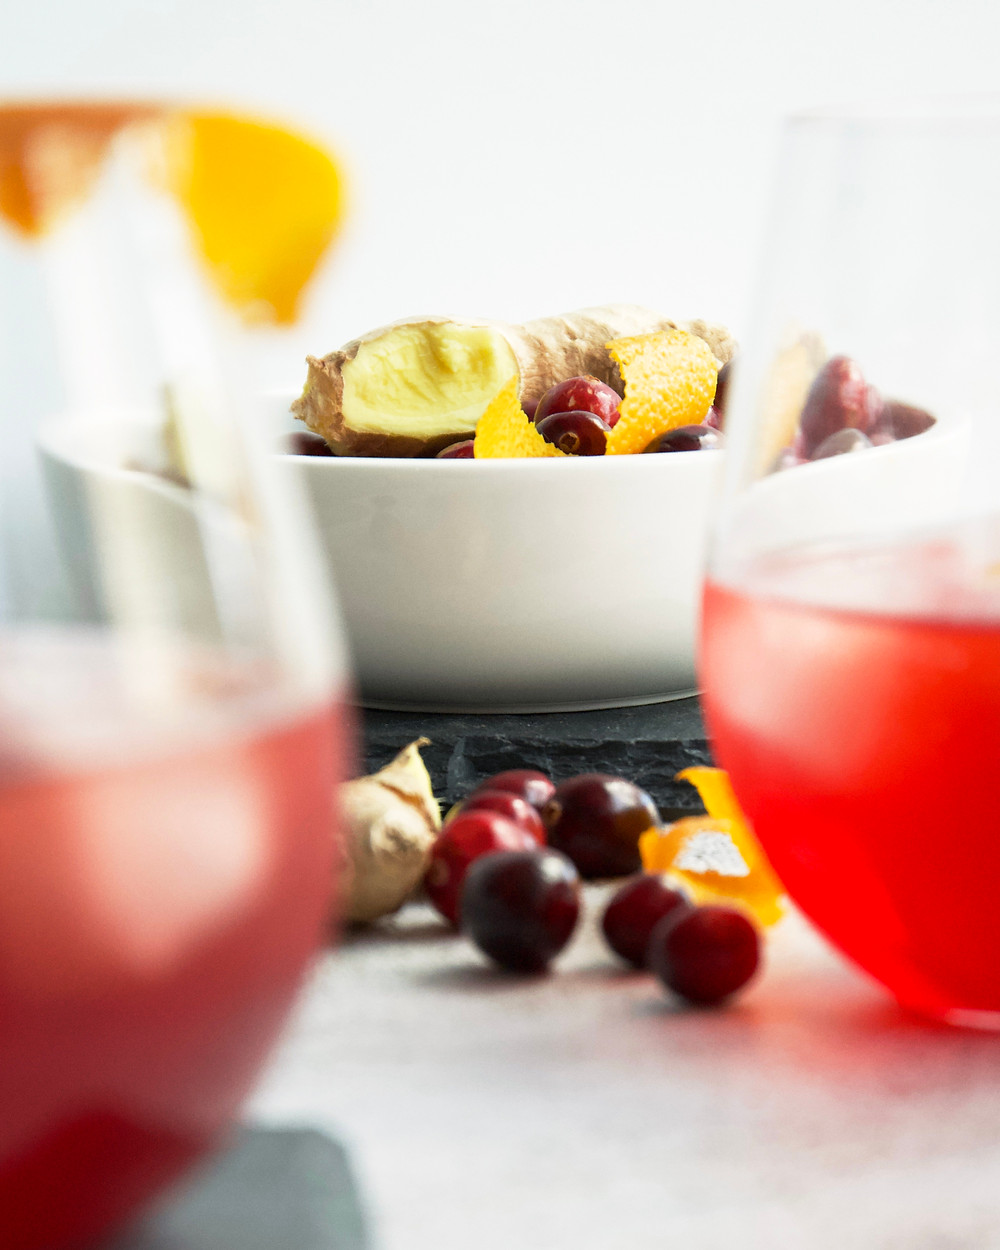 Focus on background of bowl of ginger and cranberries, blurred cocktails in foreground.